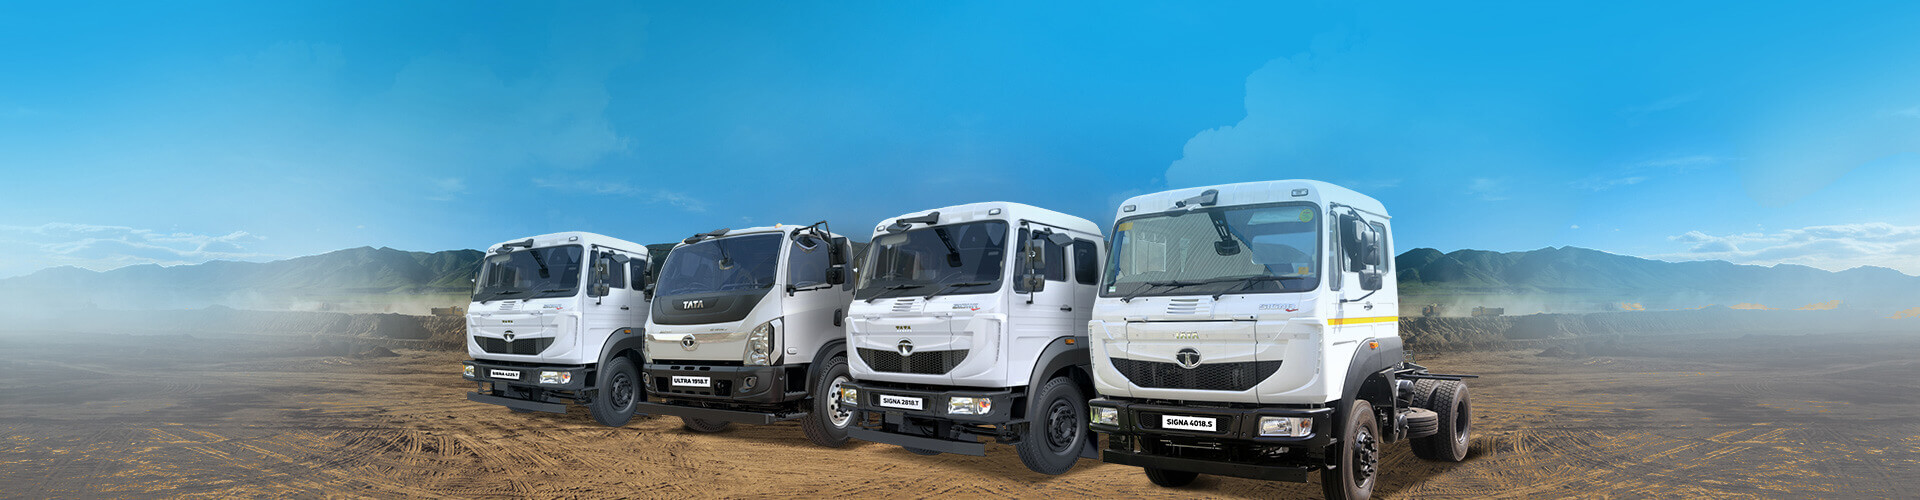 ABOUT TATA MOTORS